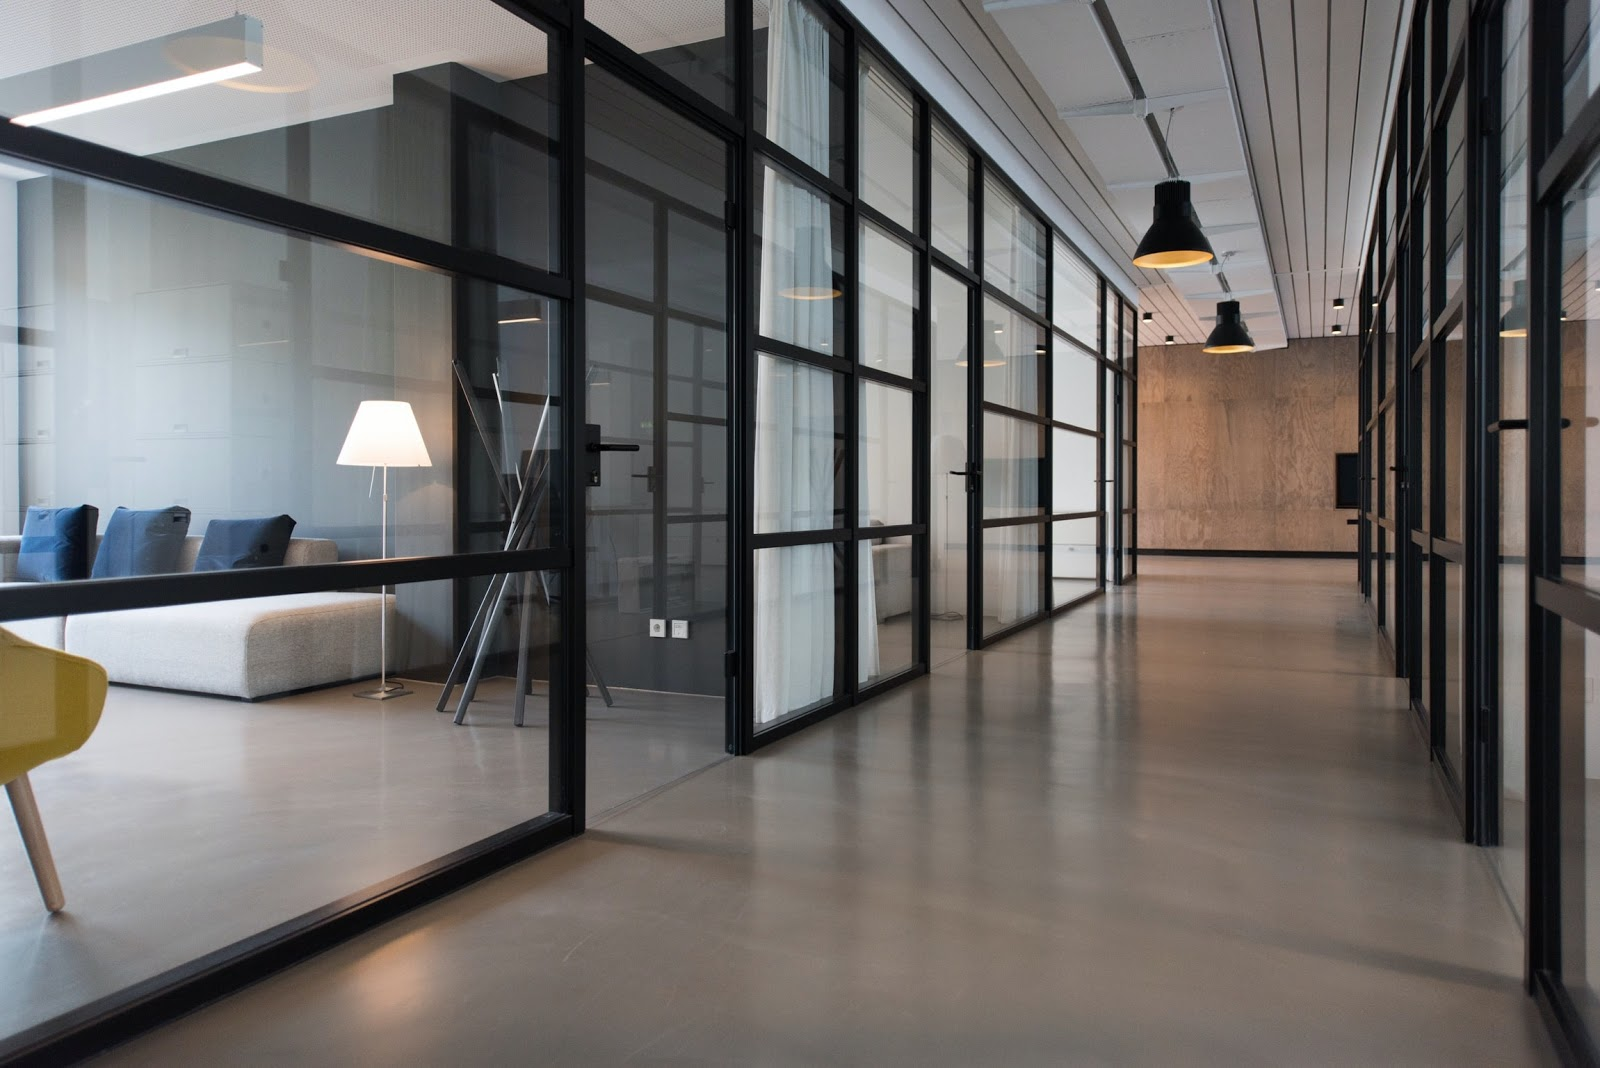 3 ways to modernize your commercial space